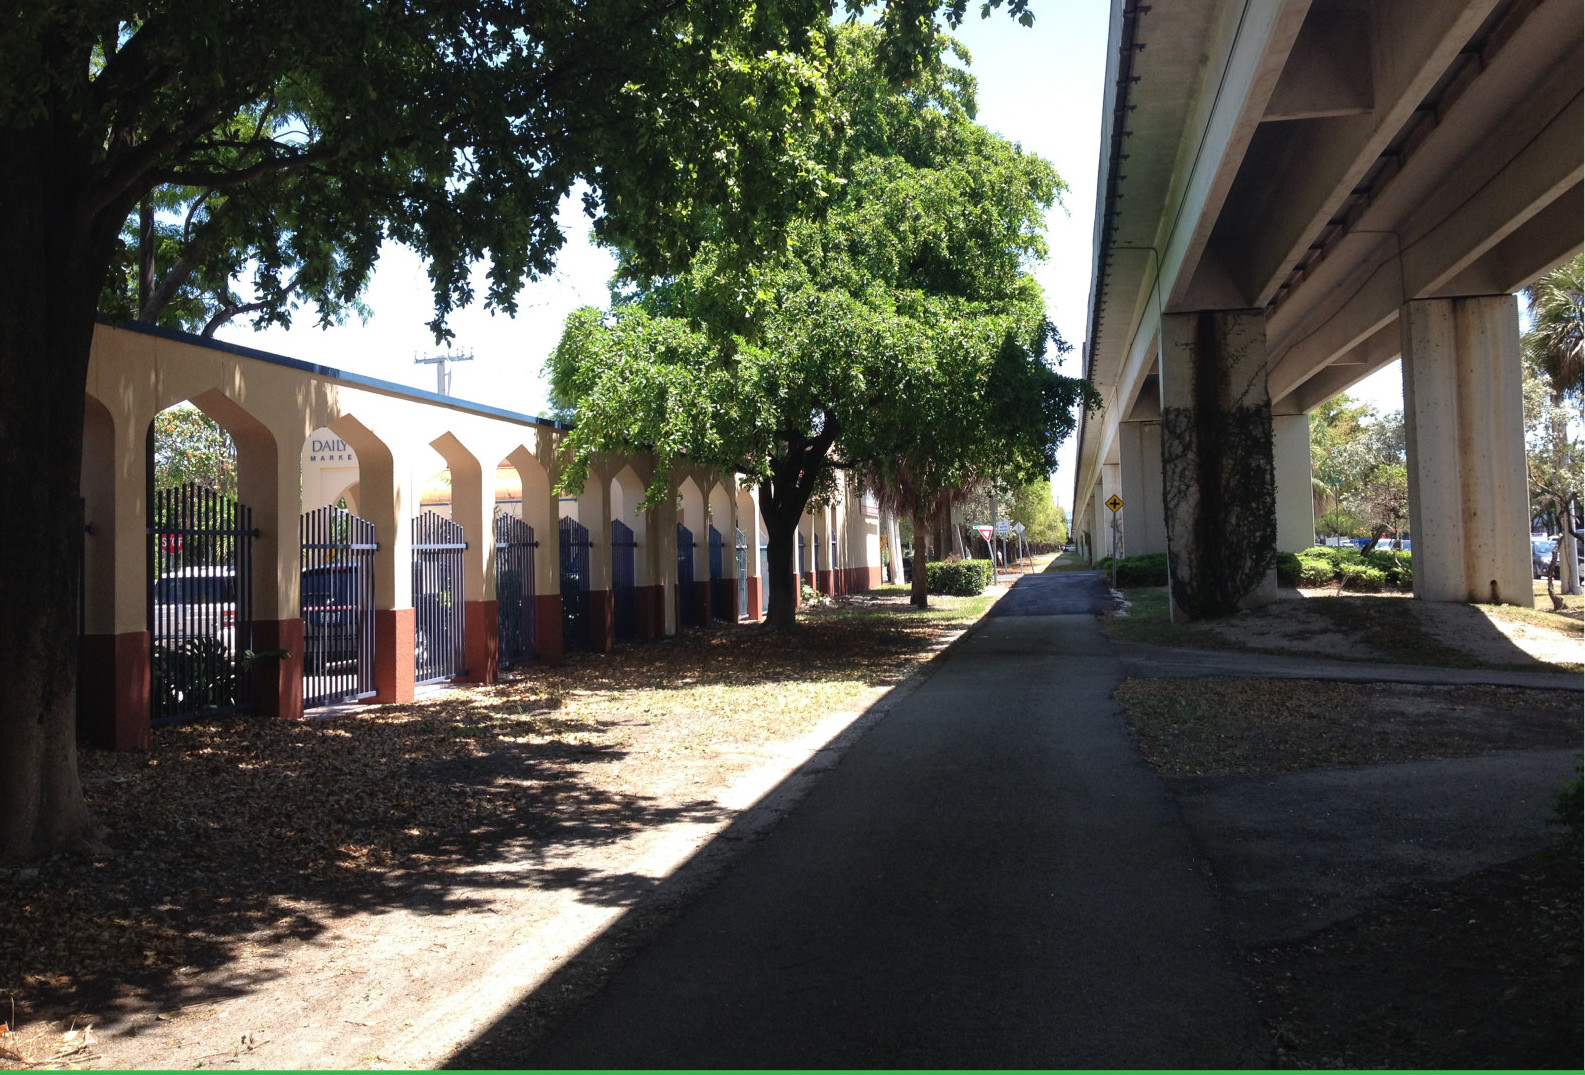 Existing corridor near southwest 24th Ave. (Courtesy of James Corner Field Operations and Friends of The Underline)